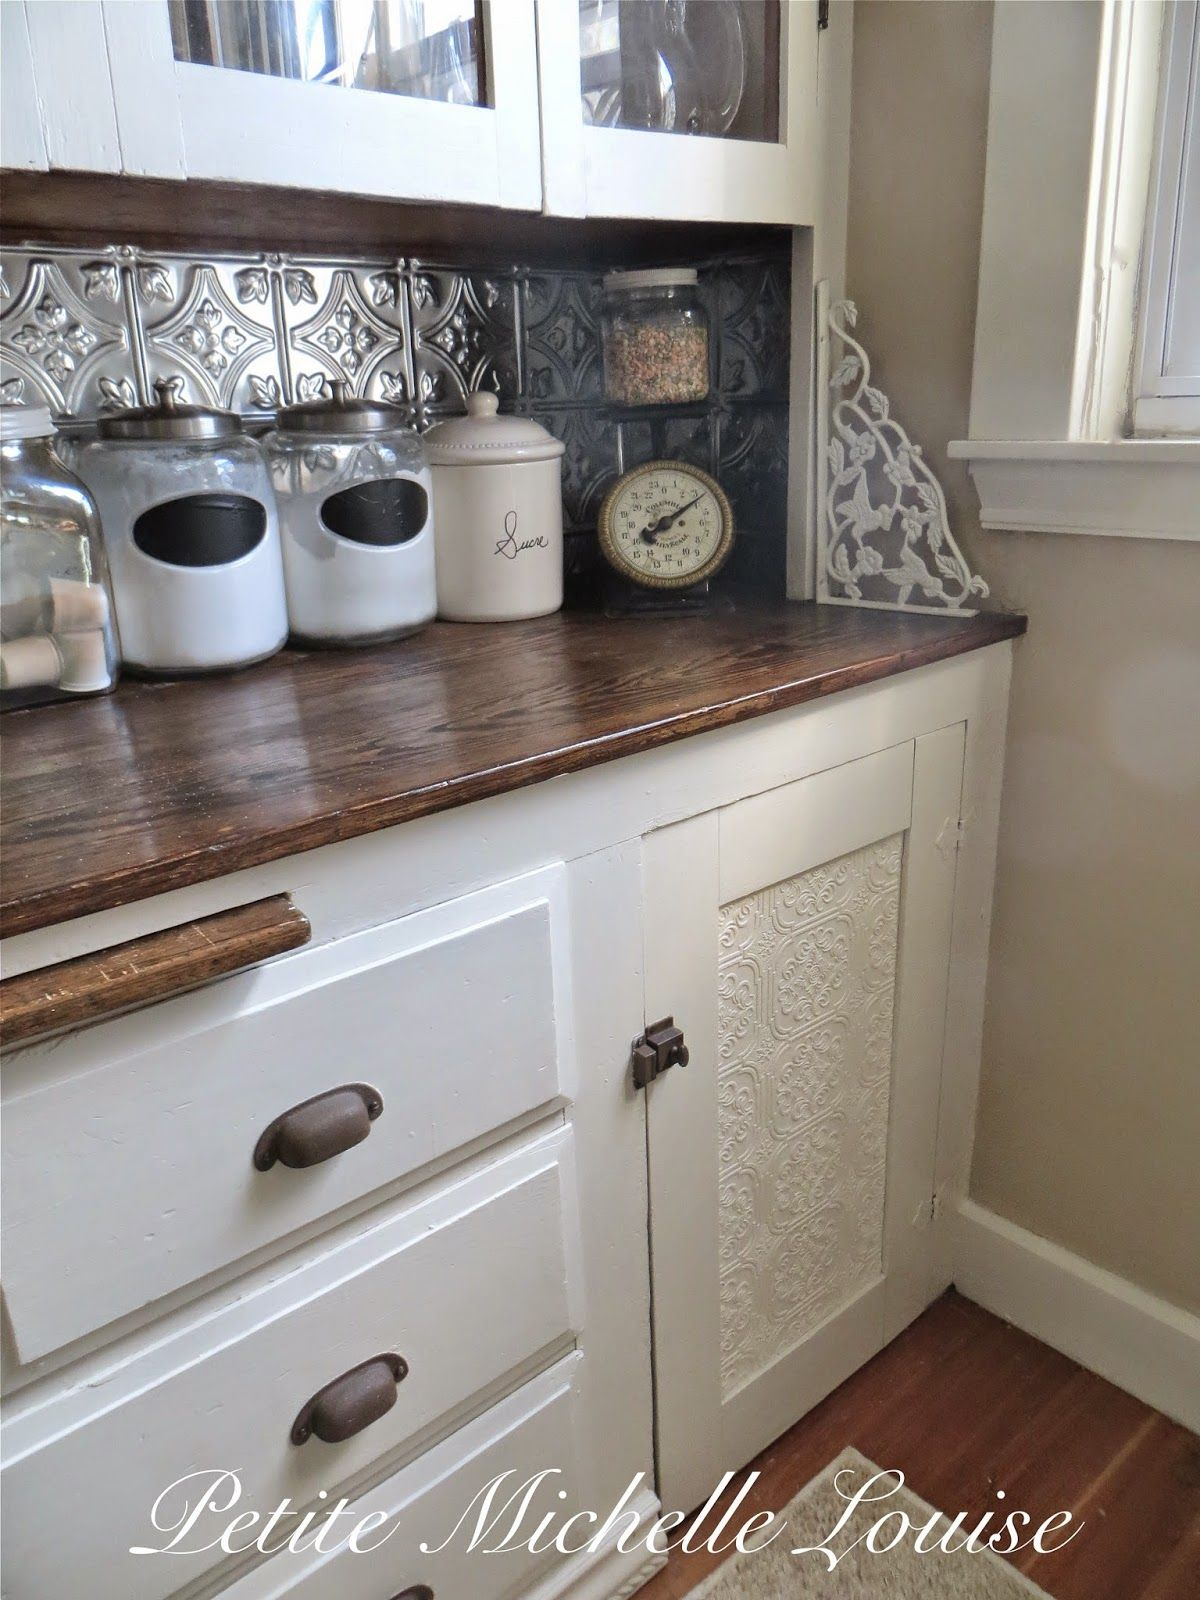 facelift for kitchen cabinets curtians petite michelle louise diy cabinet door